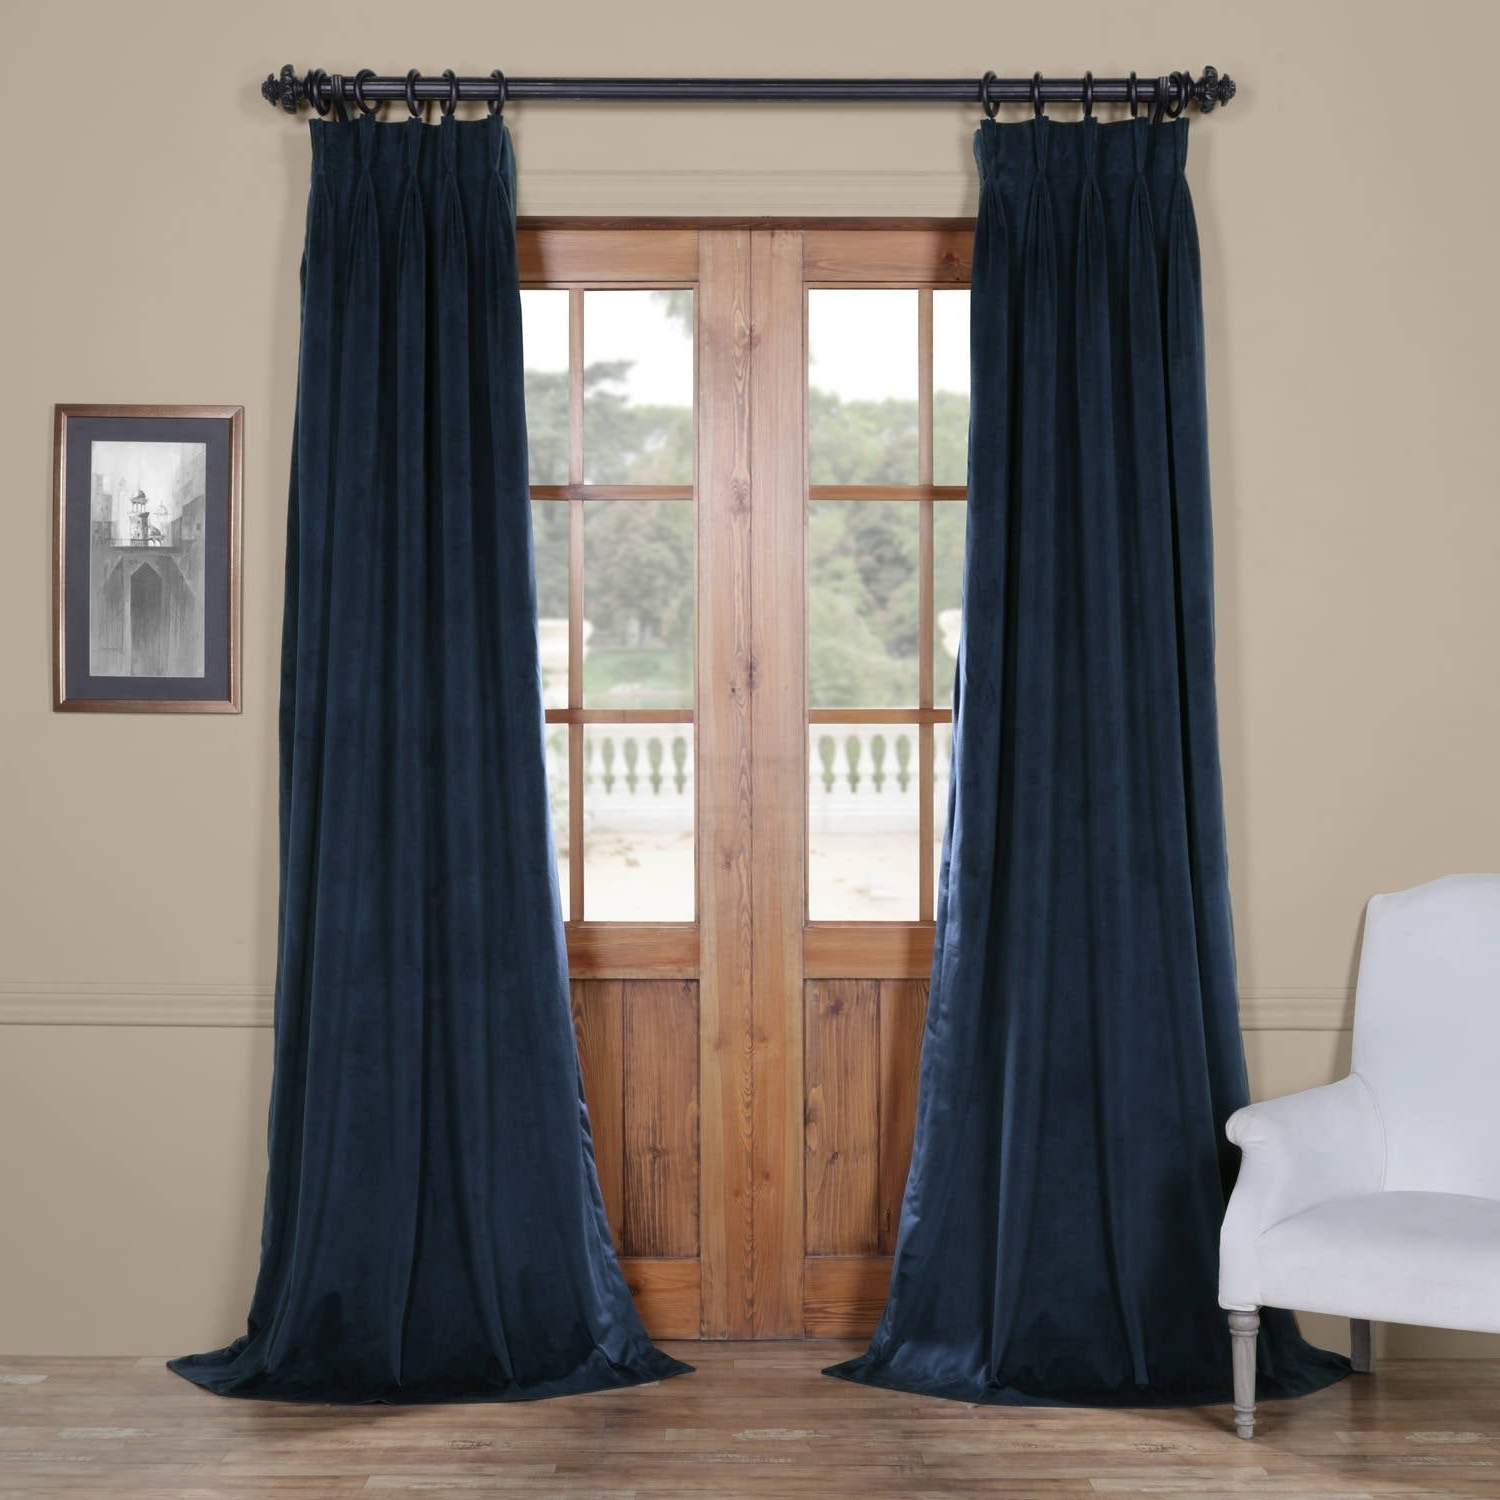 Most Current Signature Pinch Pleated Blackout Solid Velvet Curtain Panels In Exclusive Fabrics Signature Pinch Pleated Blackout Solid Velvet Curtain Panel (View 2 of 20)